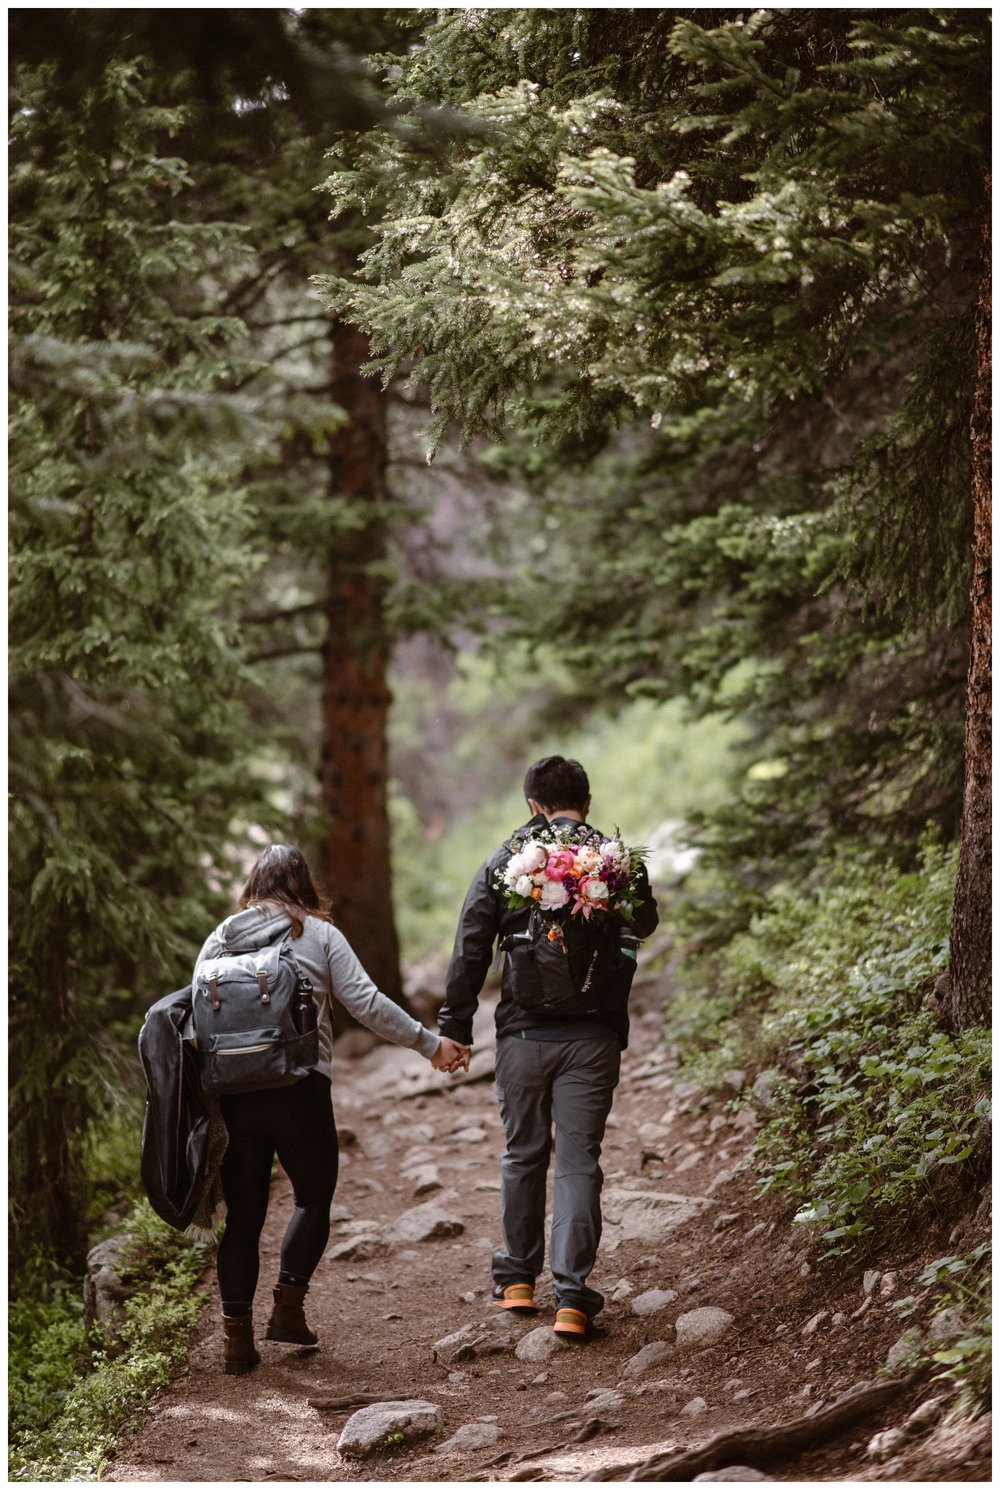 As they climb the trail towards Gem Lake for their hiking elopement, Leslie and Jinson carry their wedding attire and her bouquet on their backs. Photo by Maddie Mae Photo, Adventure Instead.